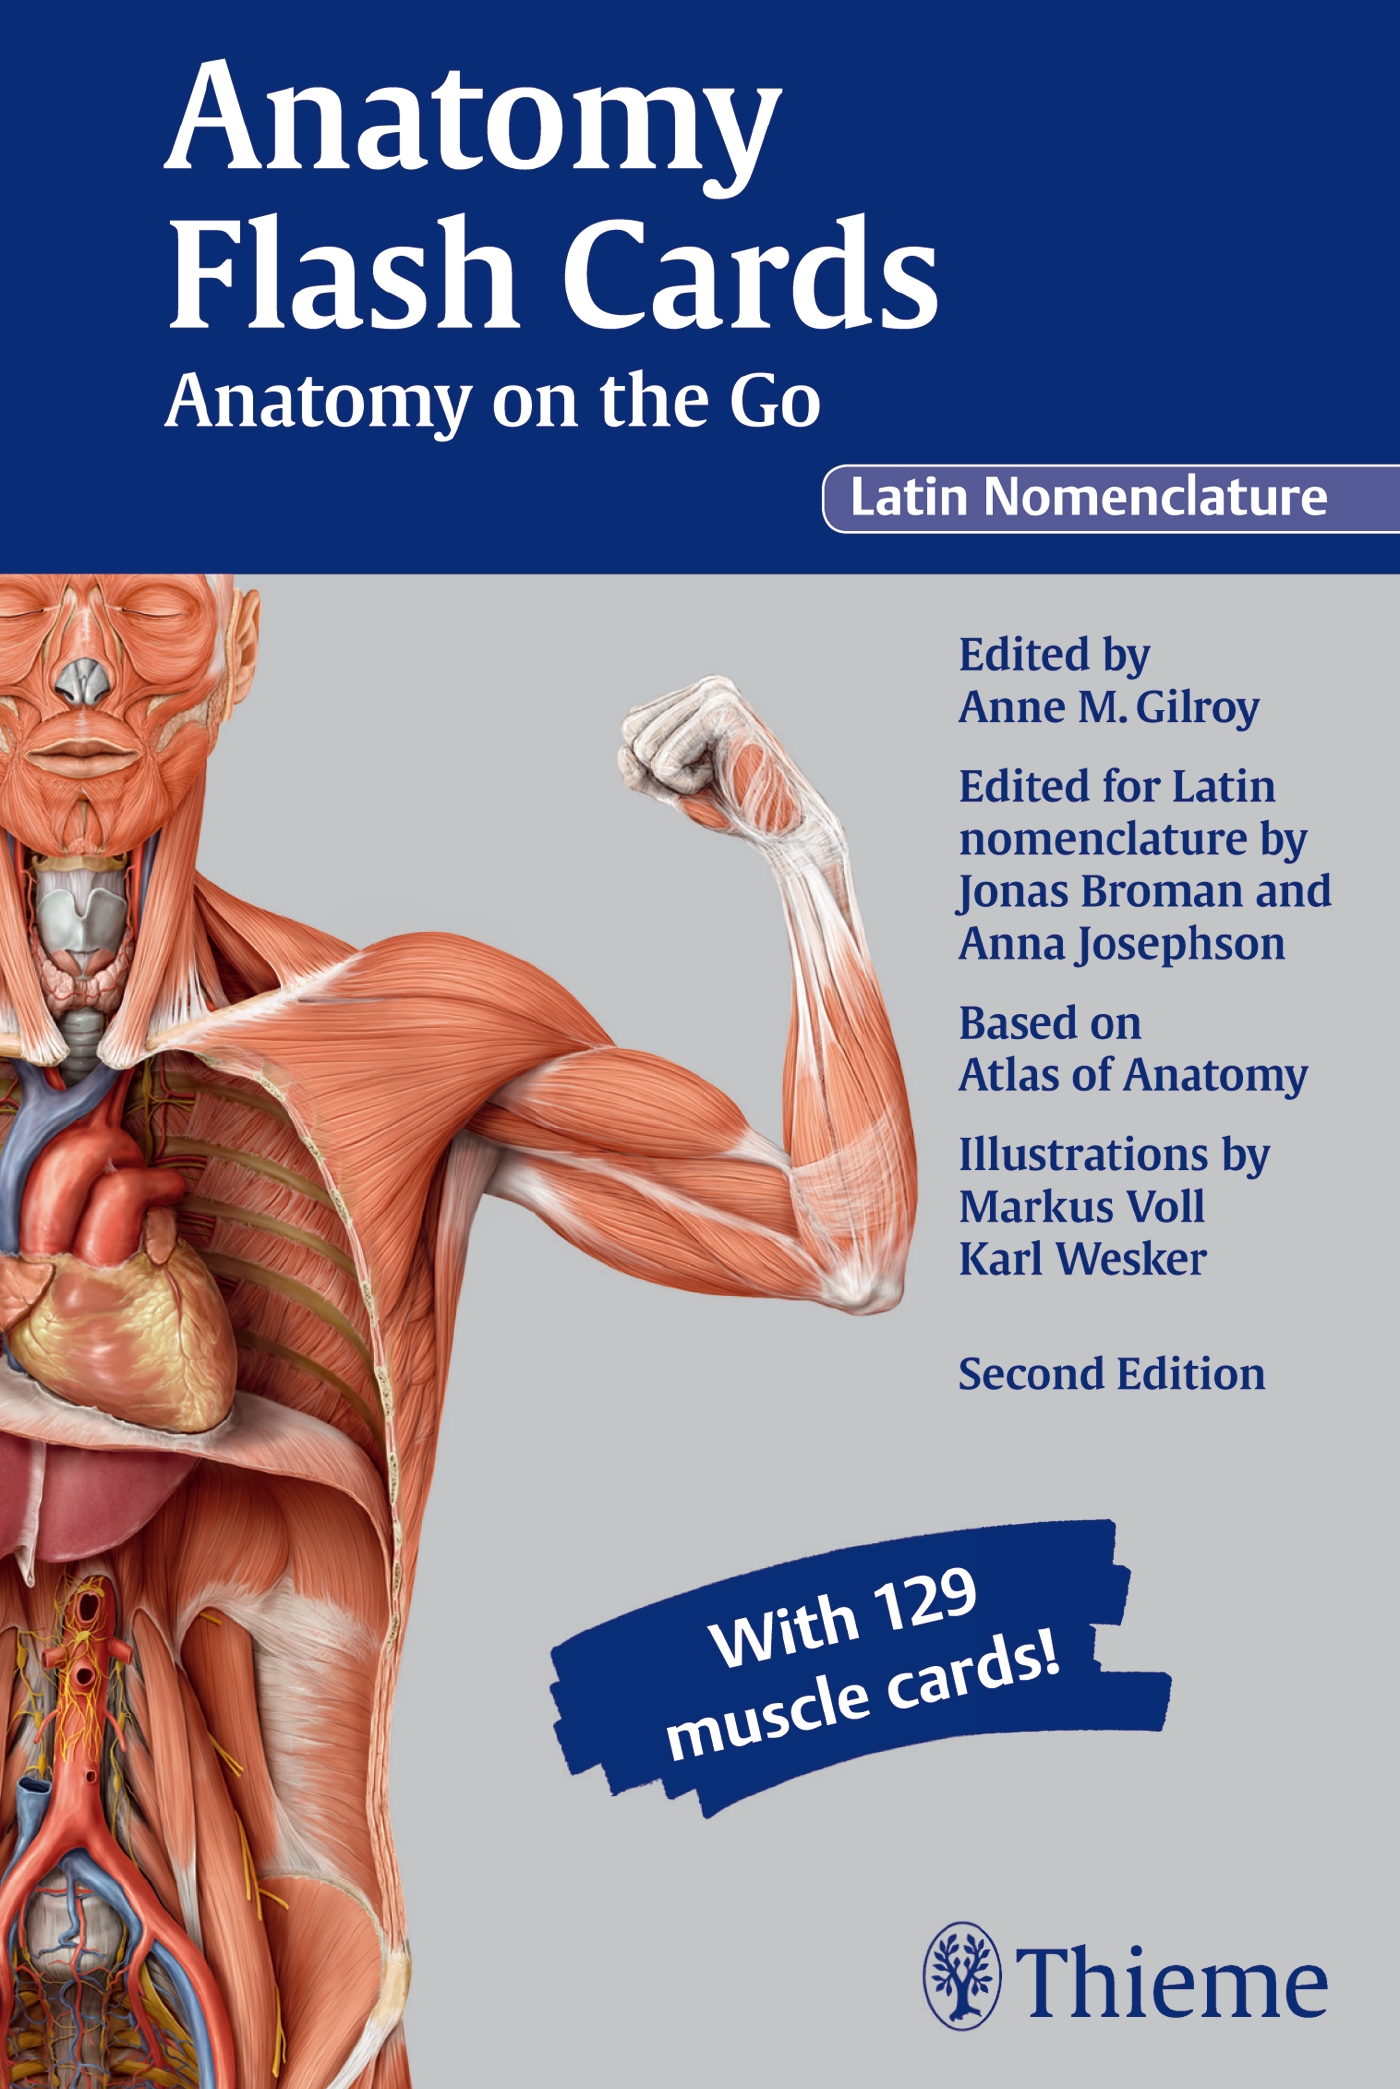 Anatomy Flash Cards: Anatomy on the Go, second edition, Latin Nomenclature